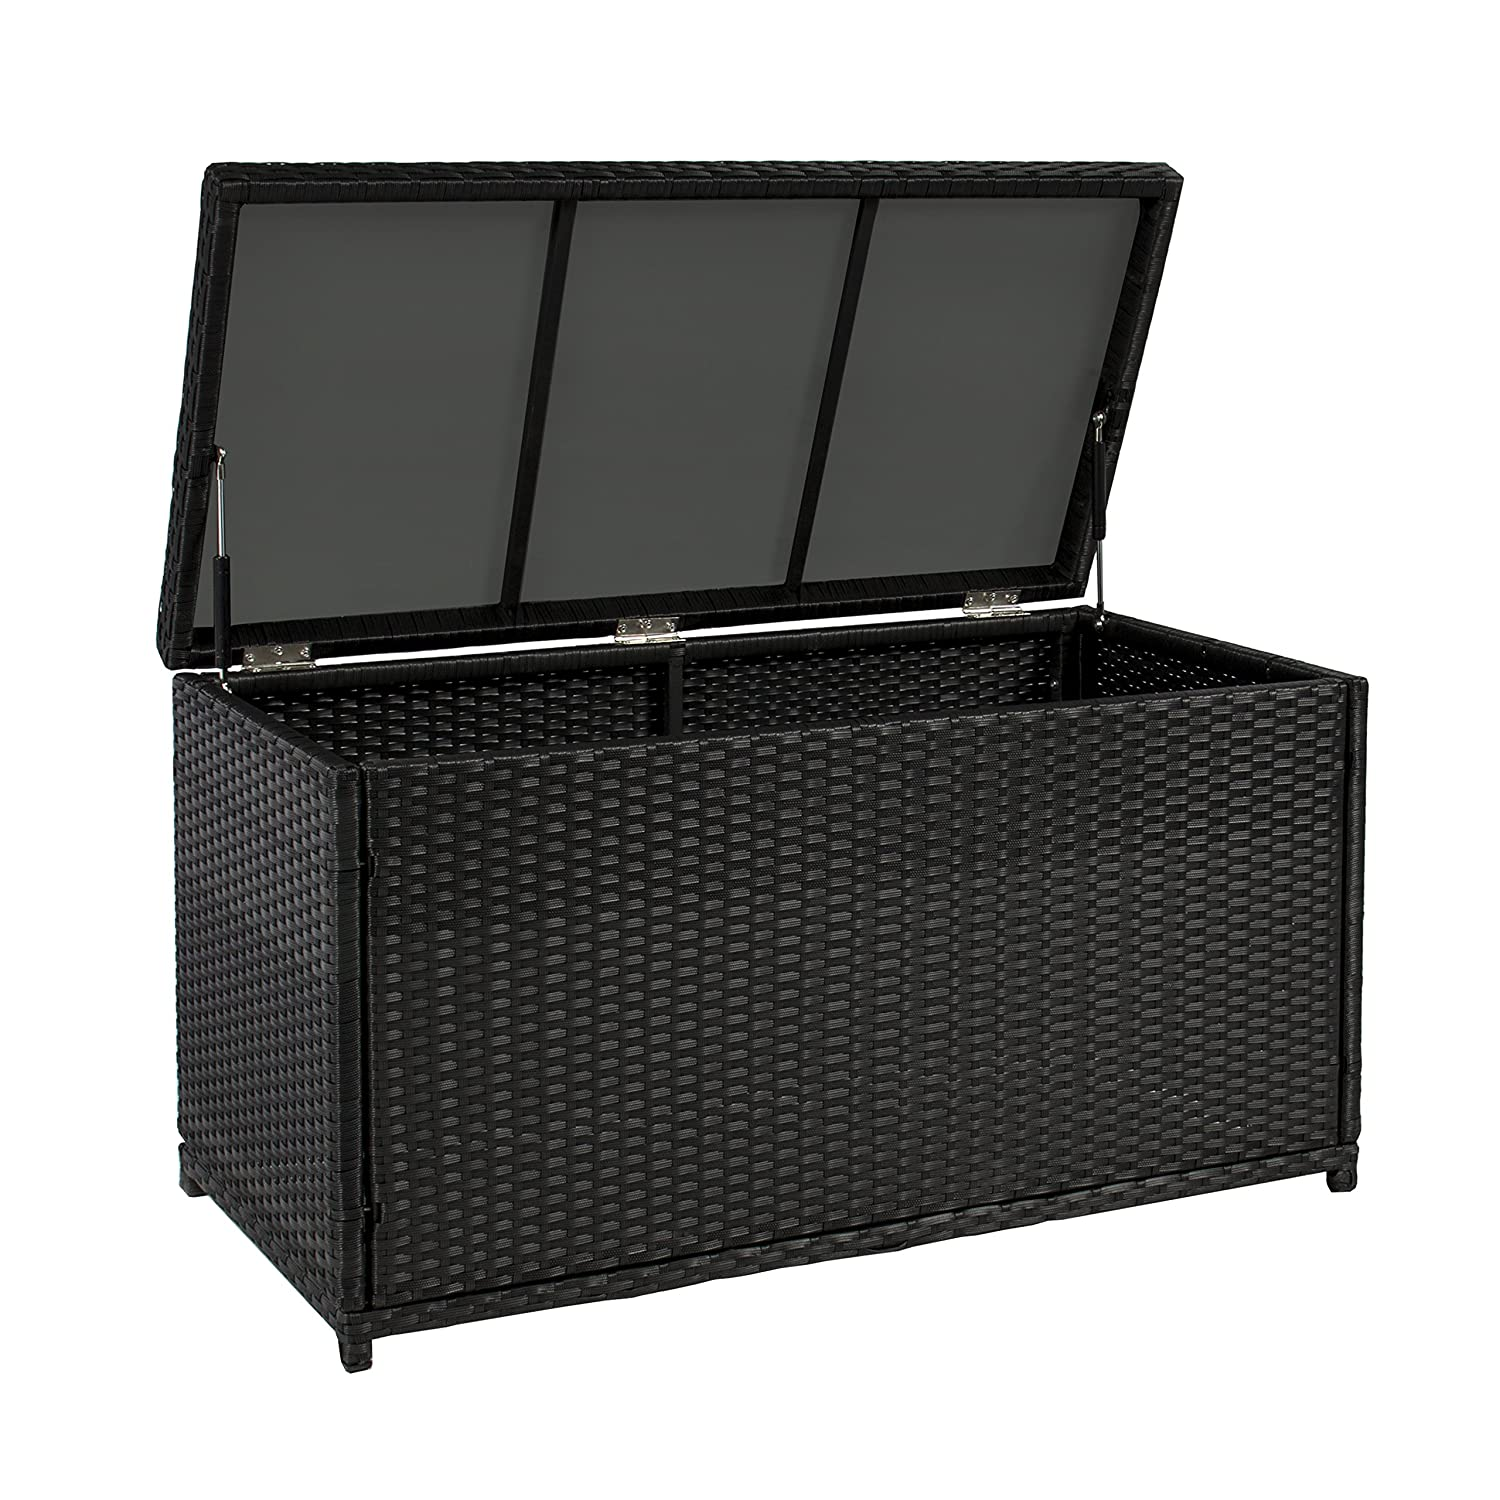 furniture deck. Amazon.com : Best ChoiceProducts Wicker Deck Storage Box Weather Proof Patio Furniture Pool Toy Container Garden \u0026 Outdoor E